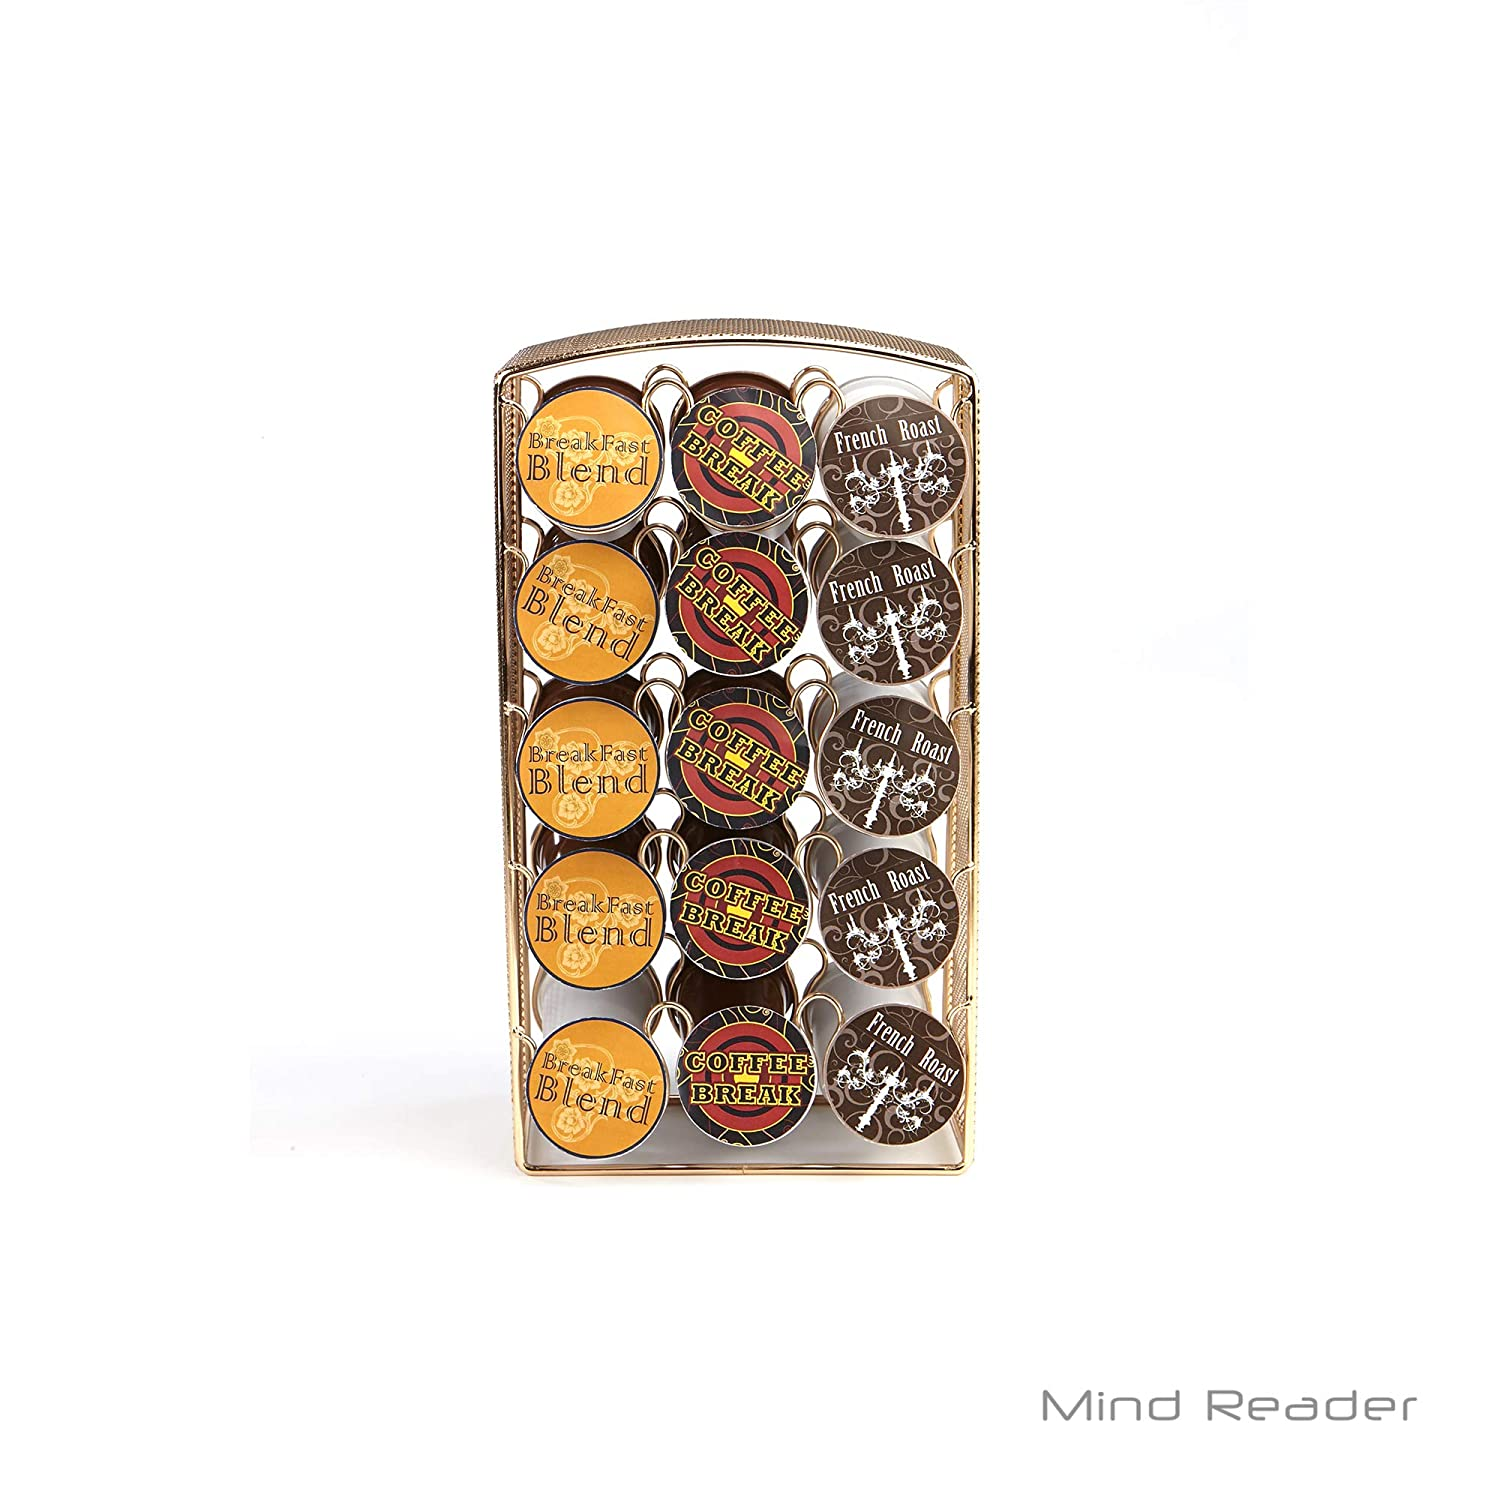 Mind Reader CRSMESH-BLK K-Cup Carousel, Holds 30 K-Cups, Coffee Pod Holders, Black Metal Mesh